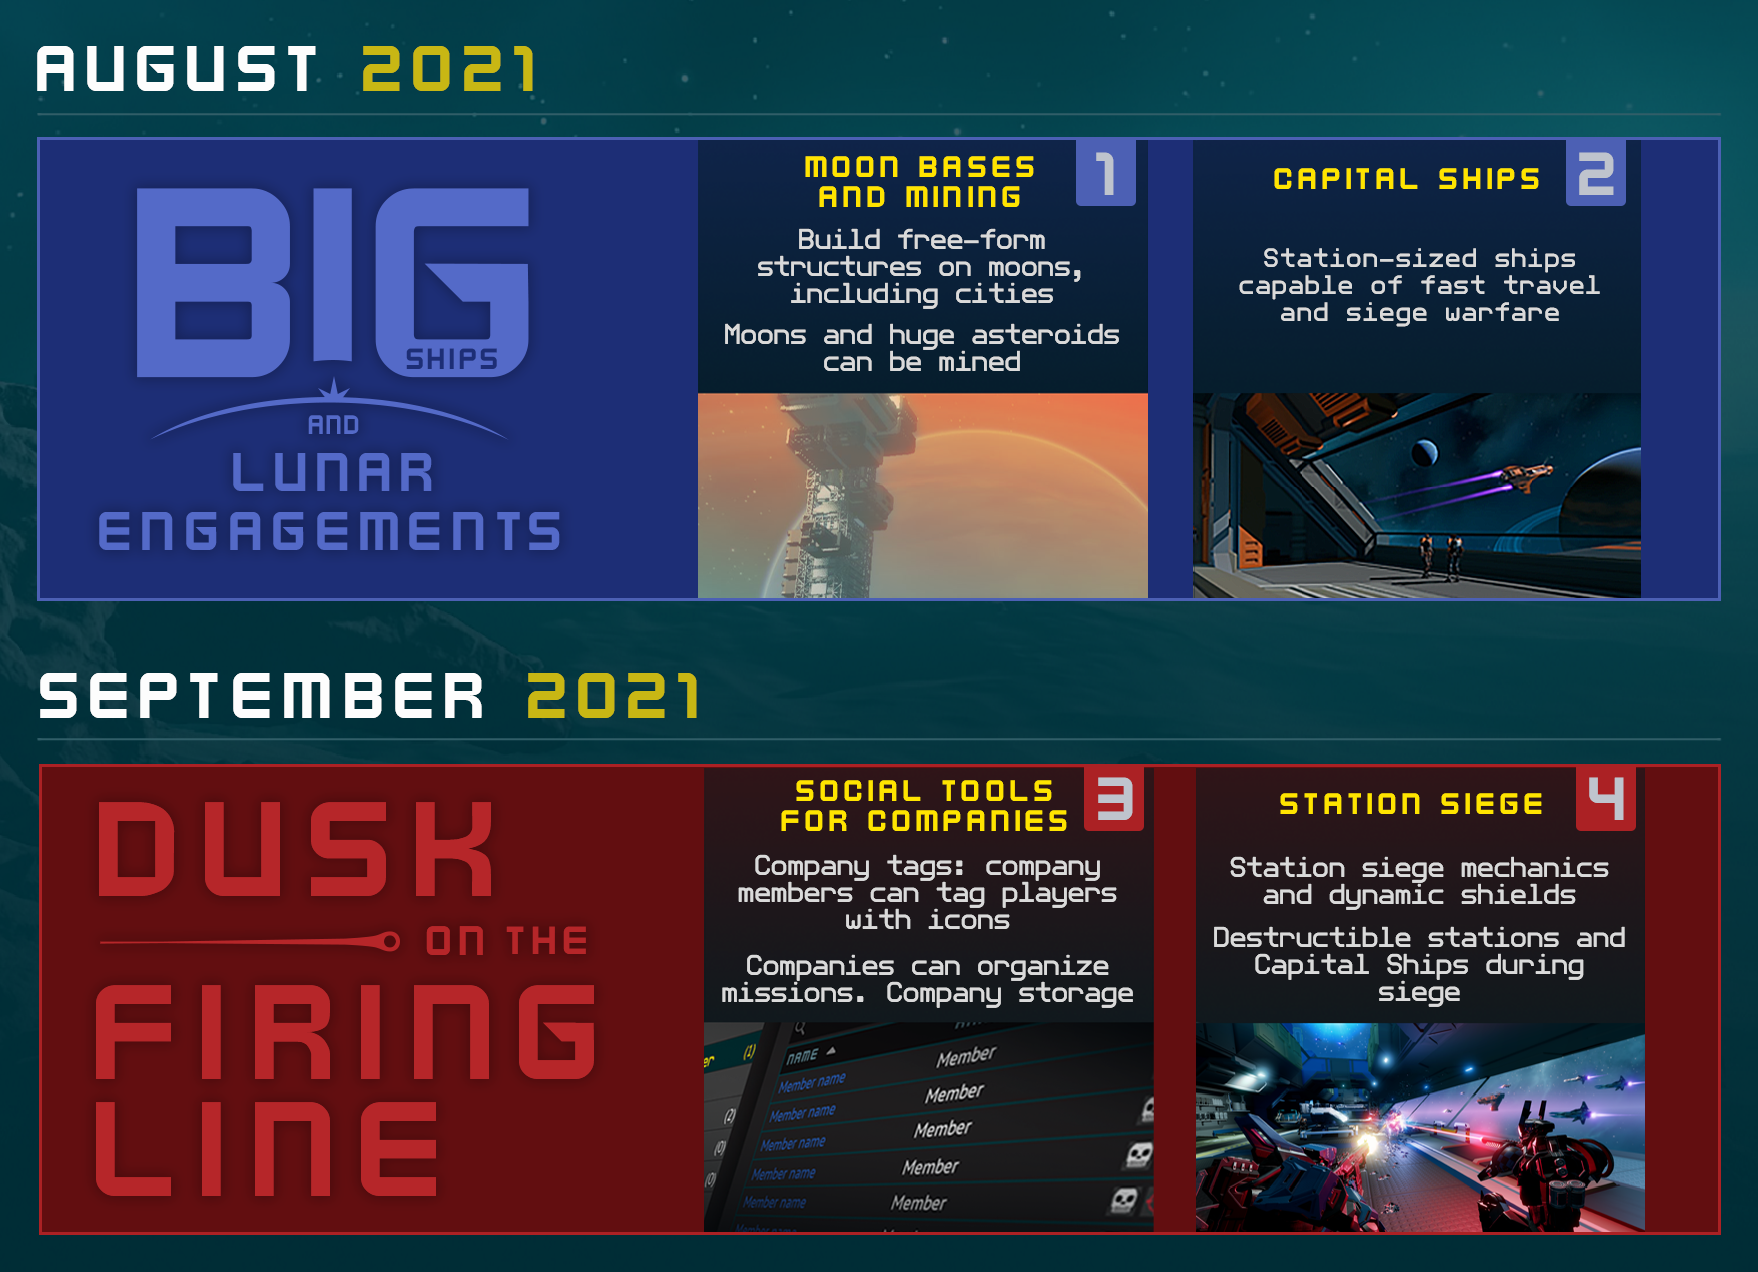 starbase_monthly_updates_tileswithbg_year_22.7.2021.png